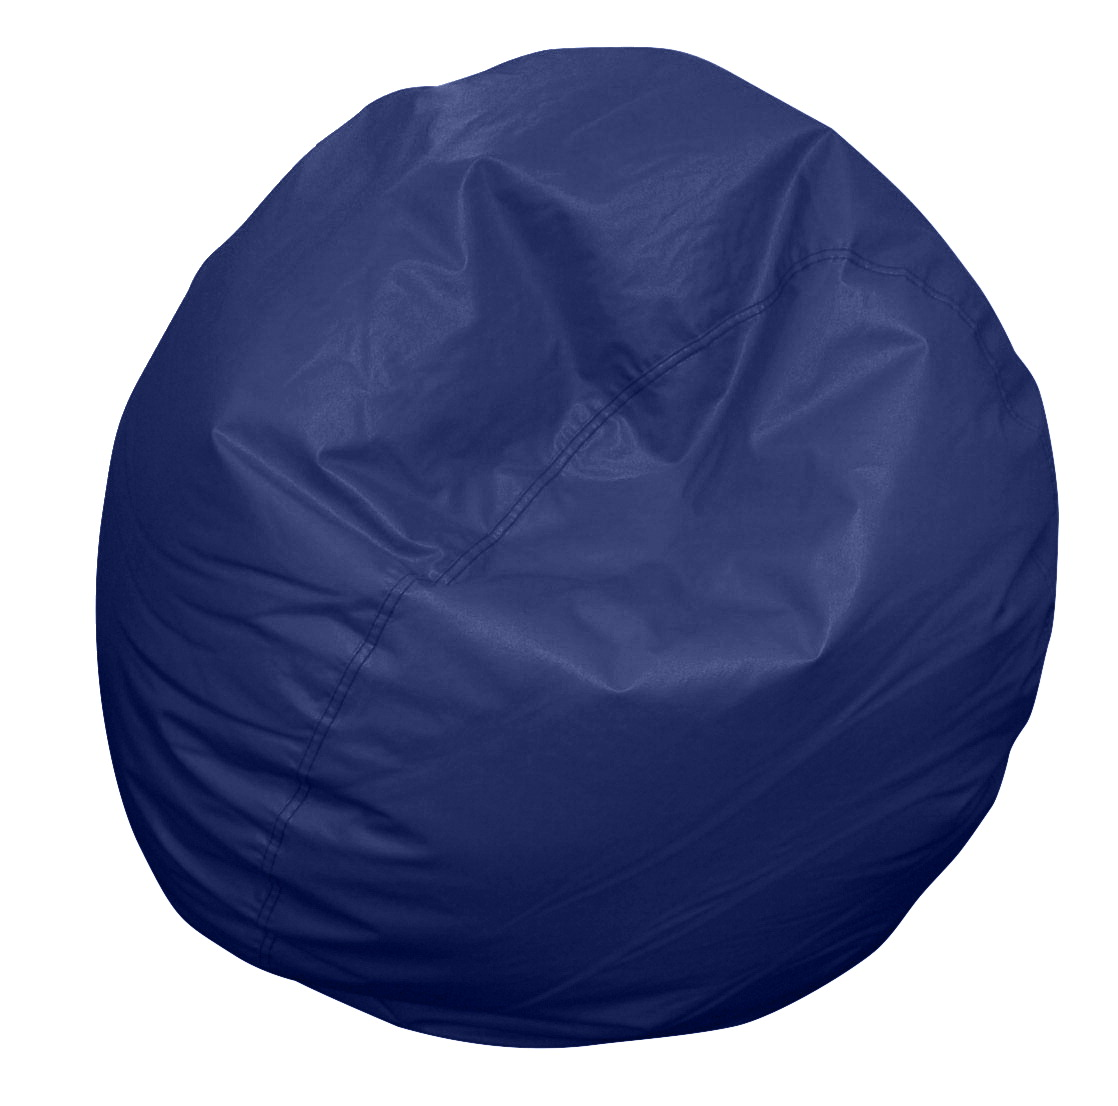 Brown Sales Adult Bean Bag Chair 34 Inch Diameter